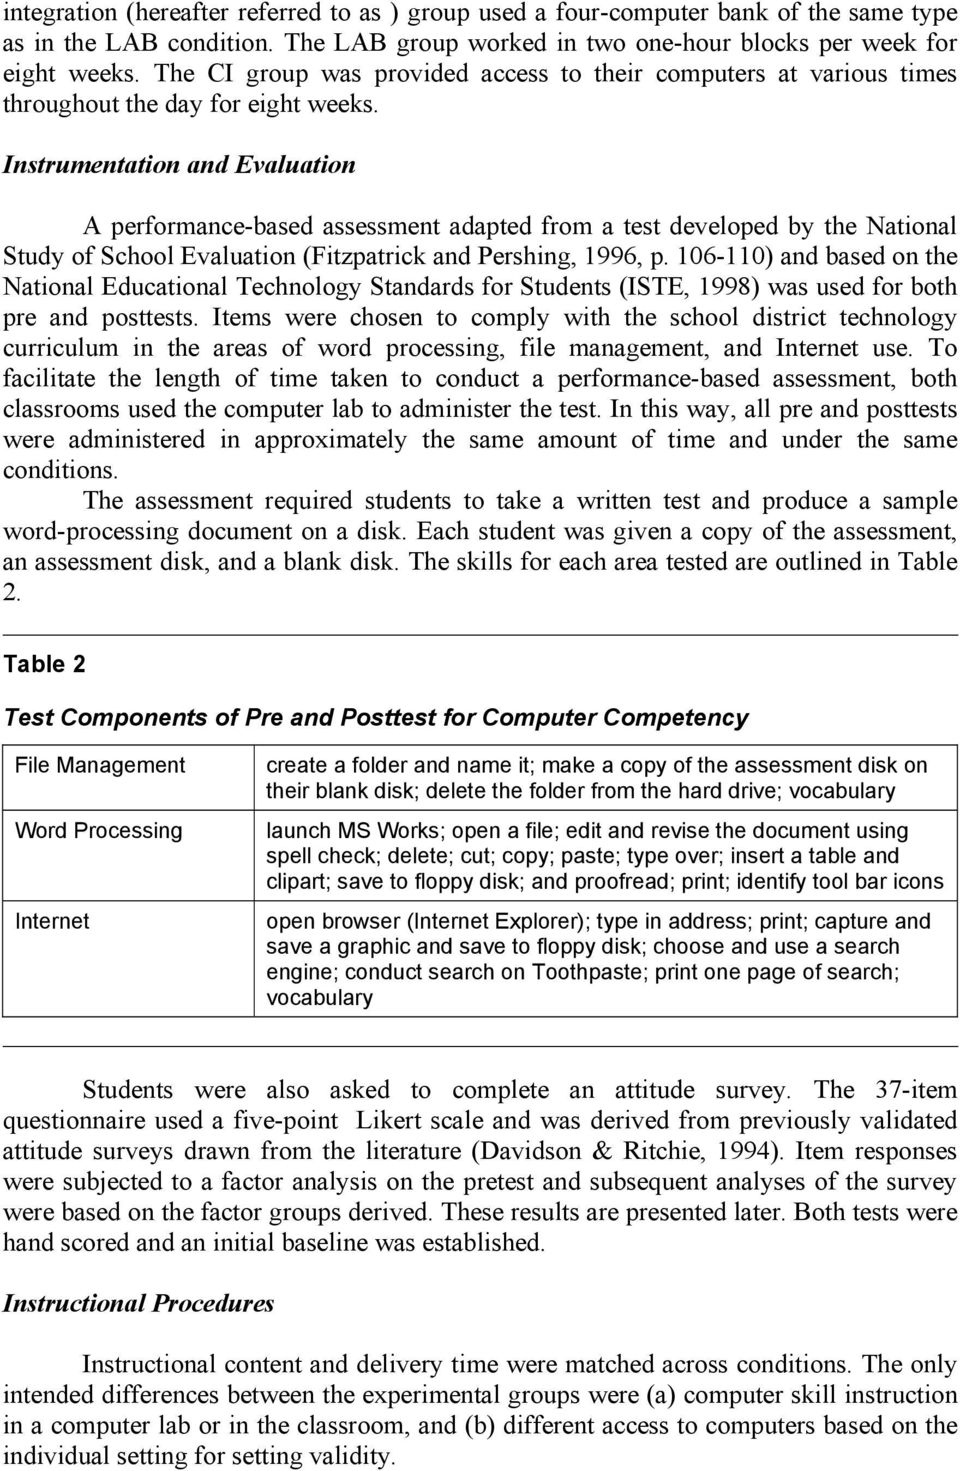 Instrumentation and Evaluation A performance-based assessment adapted from a test developed by the National Study of School Evaluation (Fitzpatrick and Pershing, 1996, p.